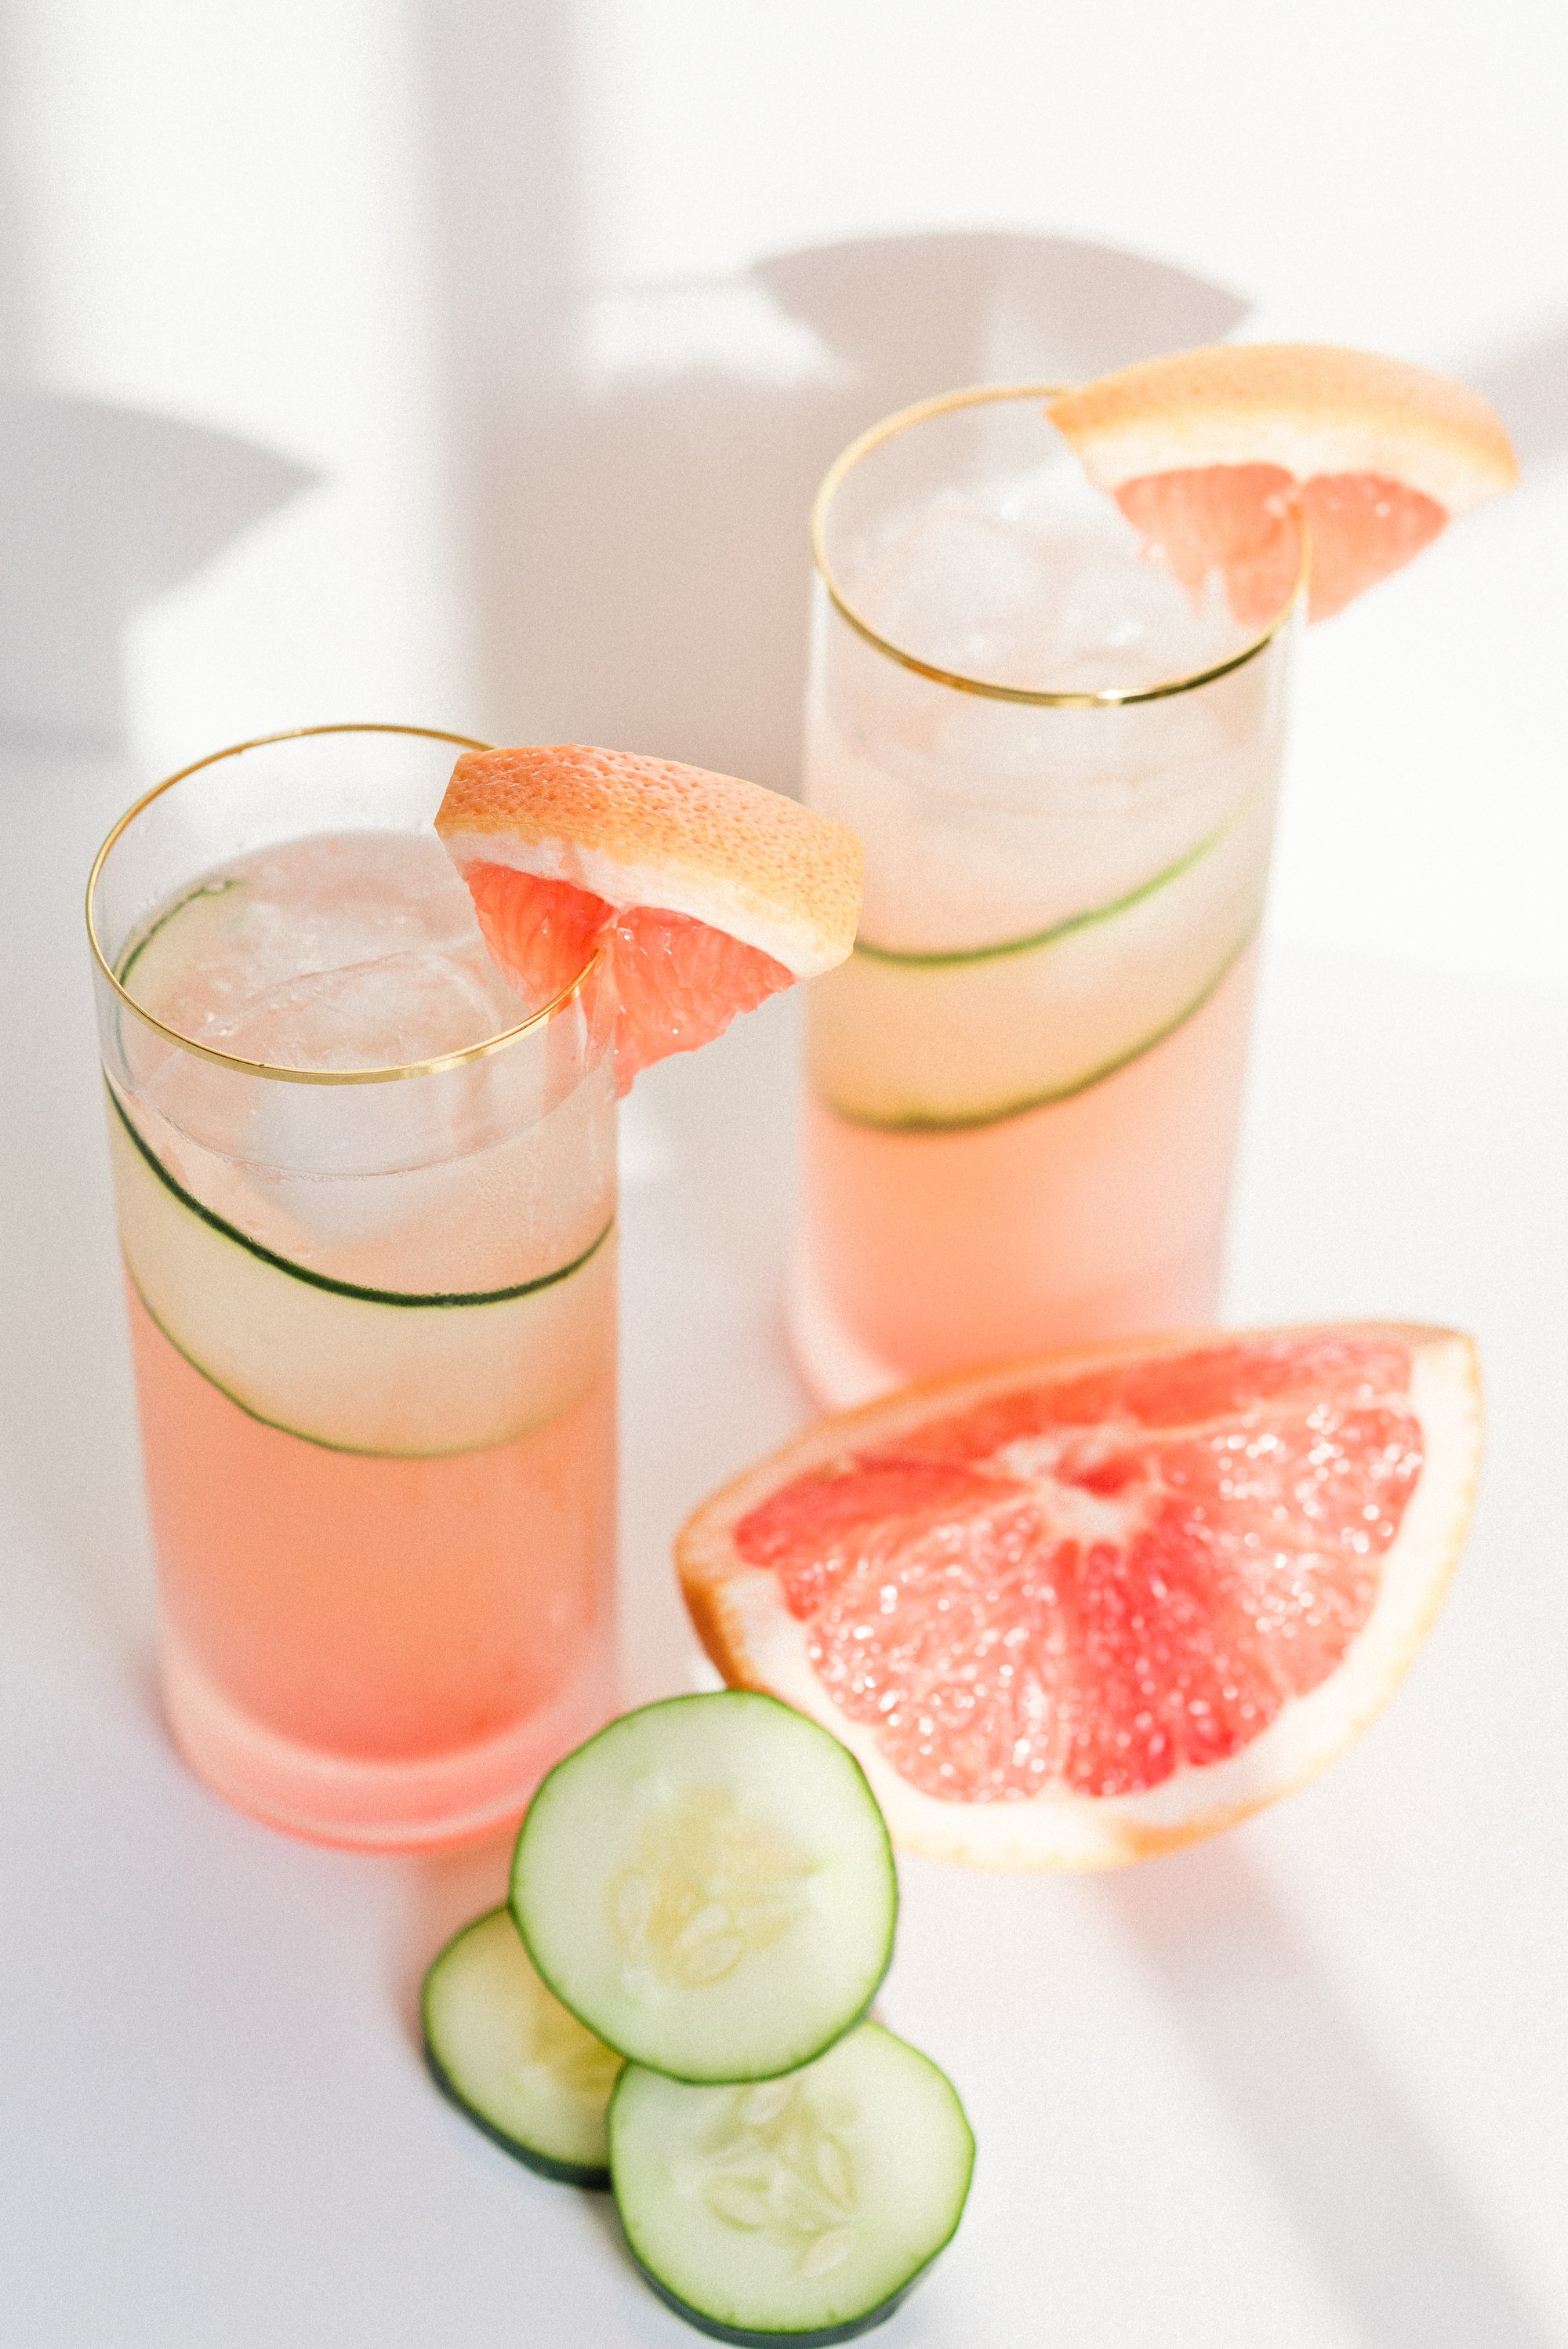 Get in vacation mode with a Grapefruit Cucumber Gin Cooler. Check out the full recipe to make your own. #cocktails #gin #grapefruit #cucumber